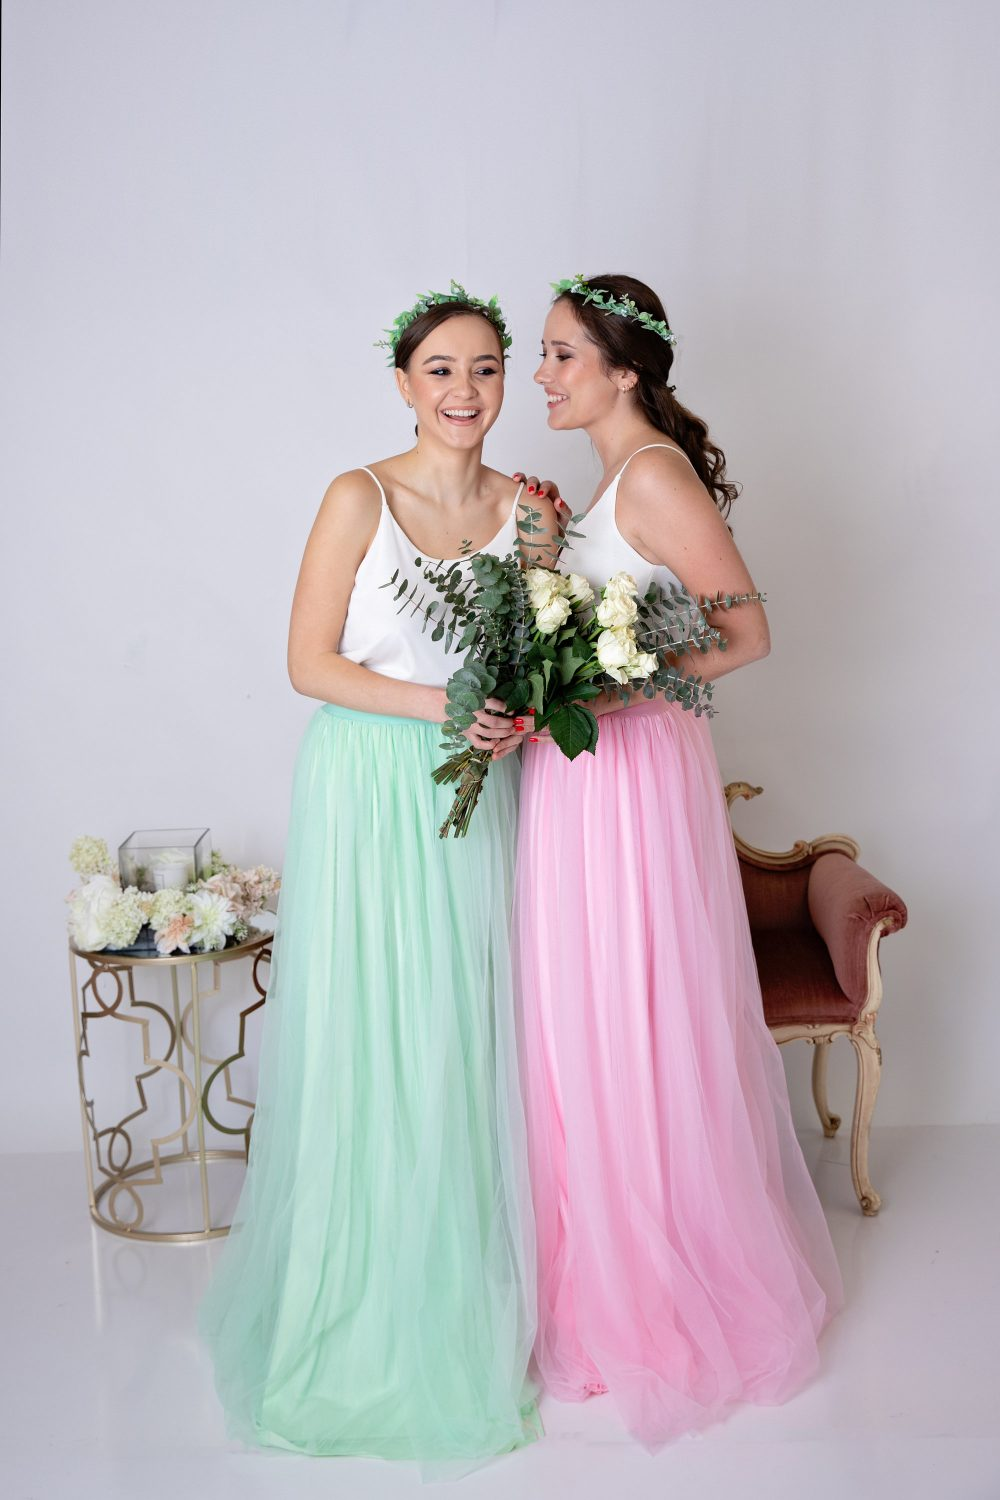 Free Shipping Soft Long Tulle Skirt/Wedding Bridesmaid Dress Tully Skirt For Photo Shoot